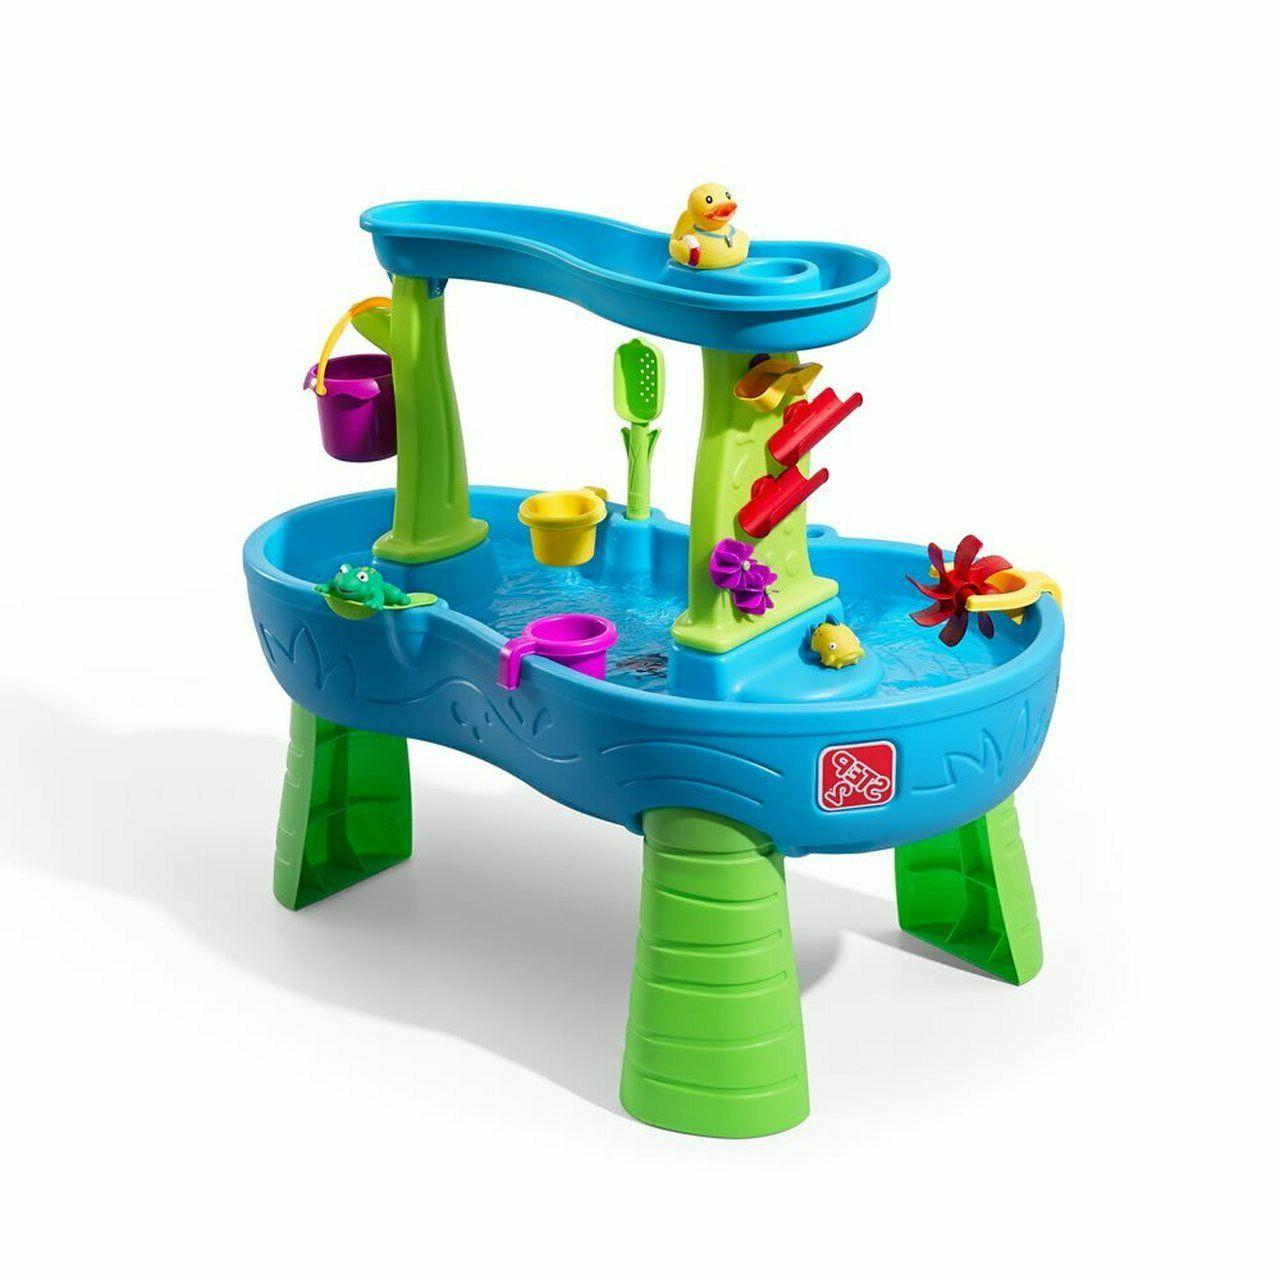 rain showers splash pond water table